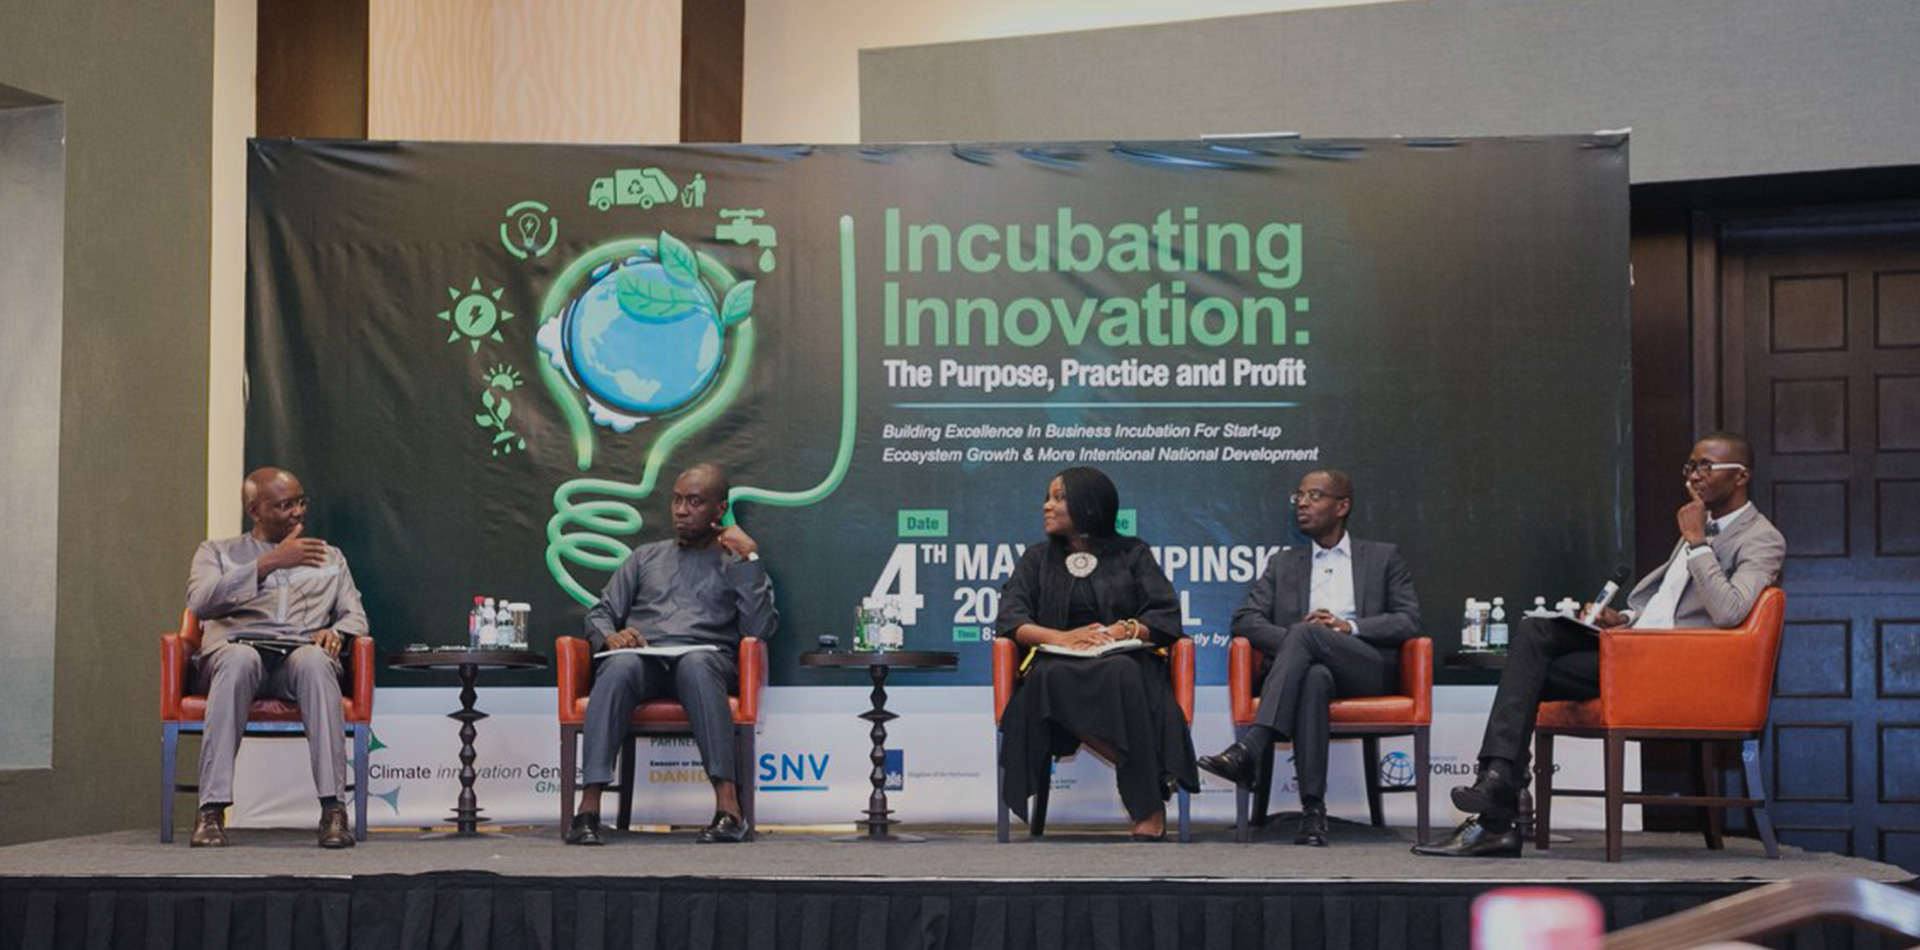 GCIC Incubating Innovation 2018 Symposium – Youtube Video